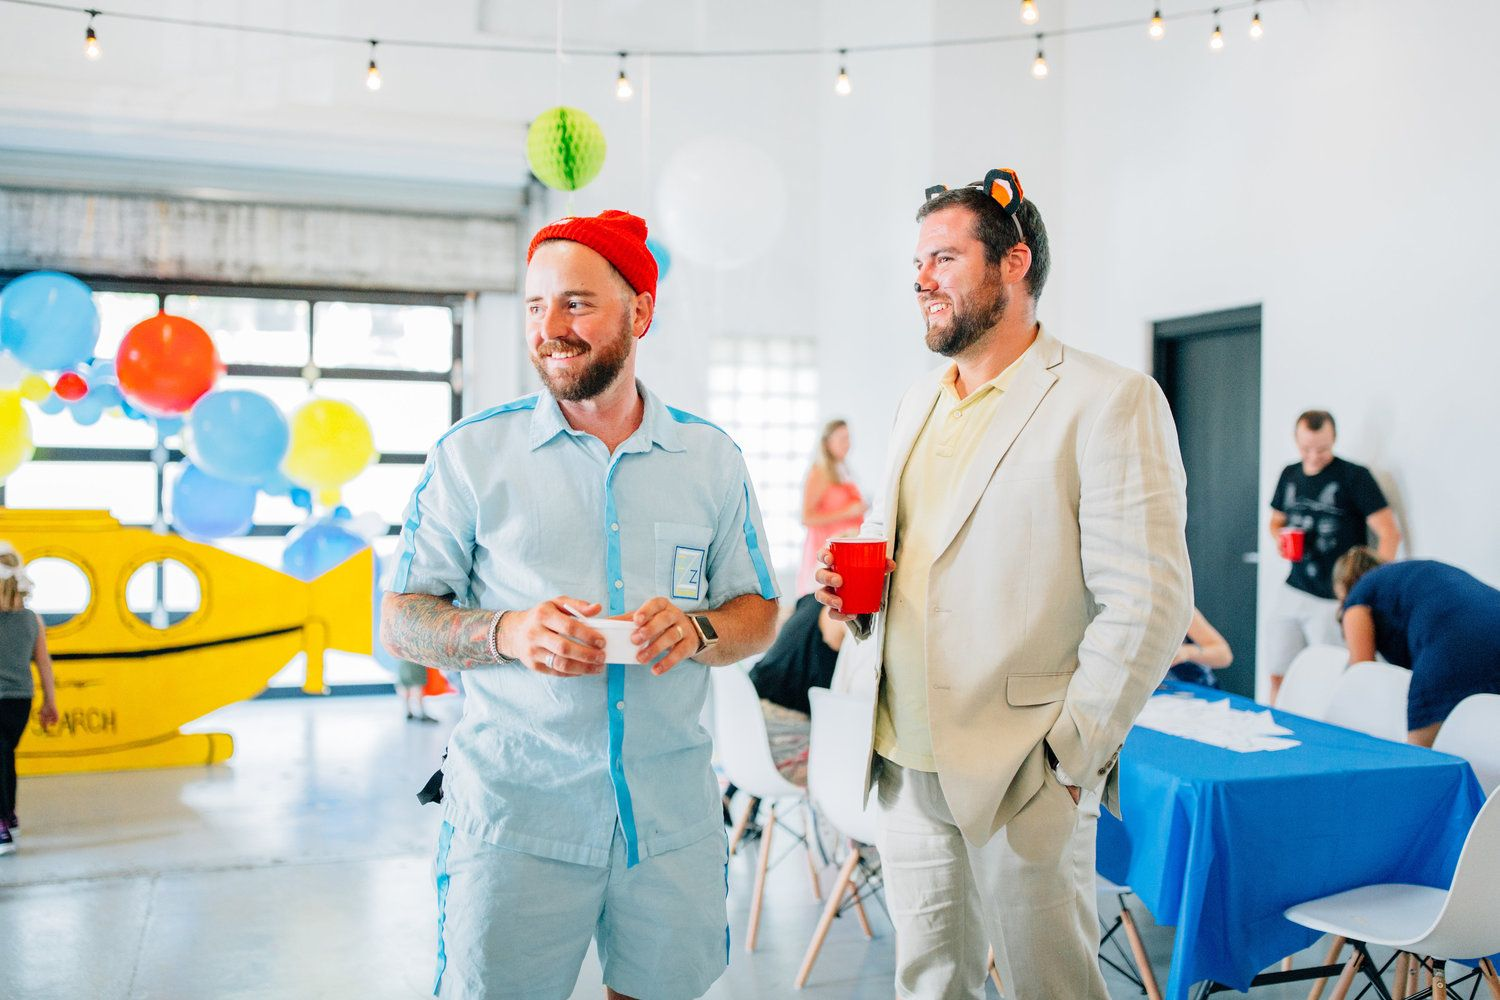 Life Aquatic Themed 1st Birthday Party Jacksonville FL Balloons Planner Six Hundred King Event Venue